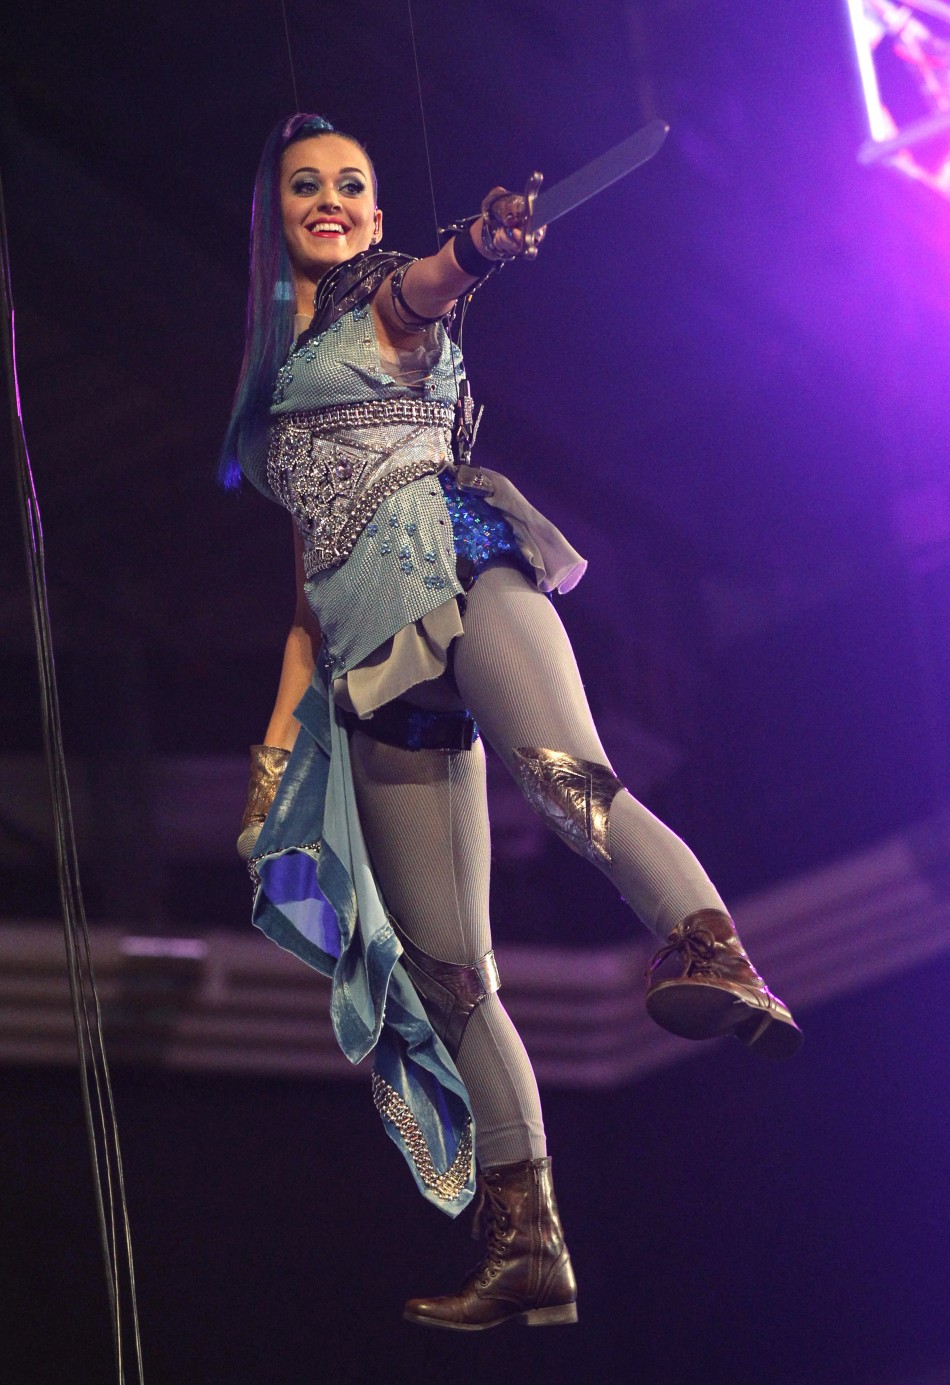 Singer Katy Perry performs at Nickelodeon039s 25th annual Kids039 Choice Awards in Los Angeles